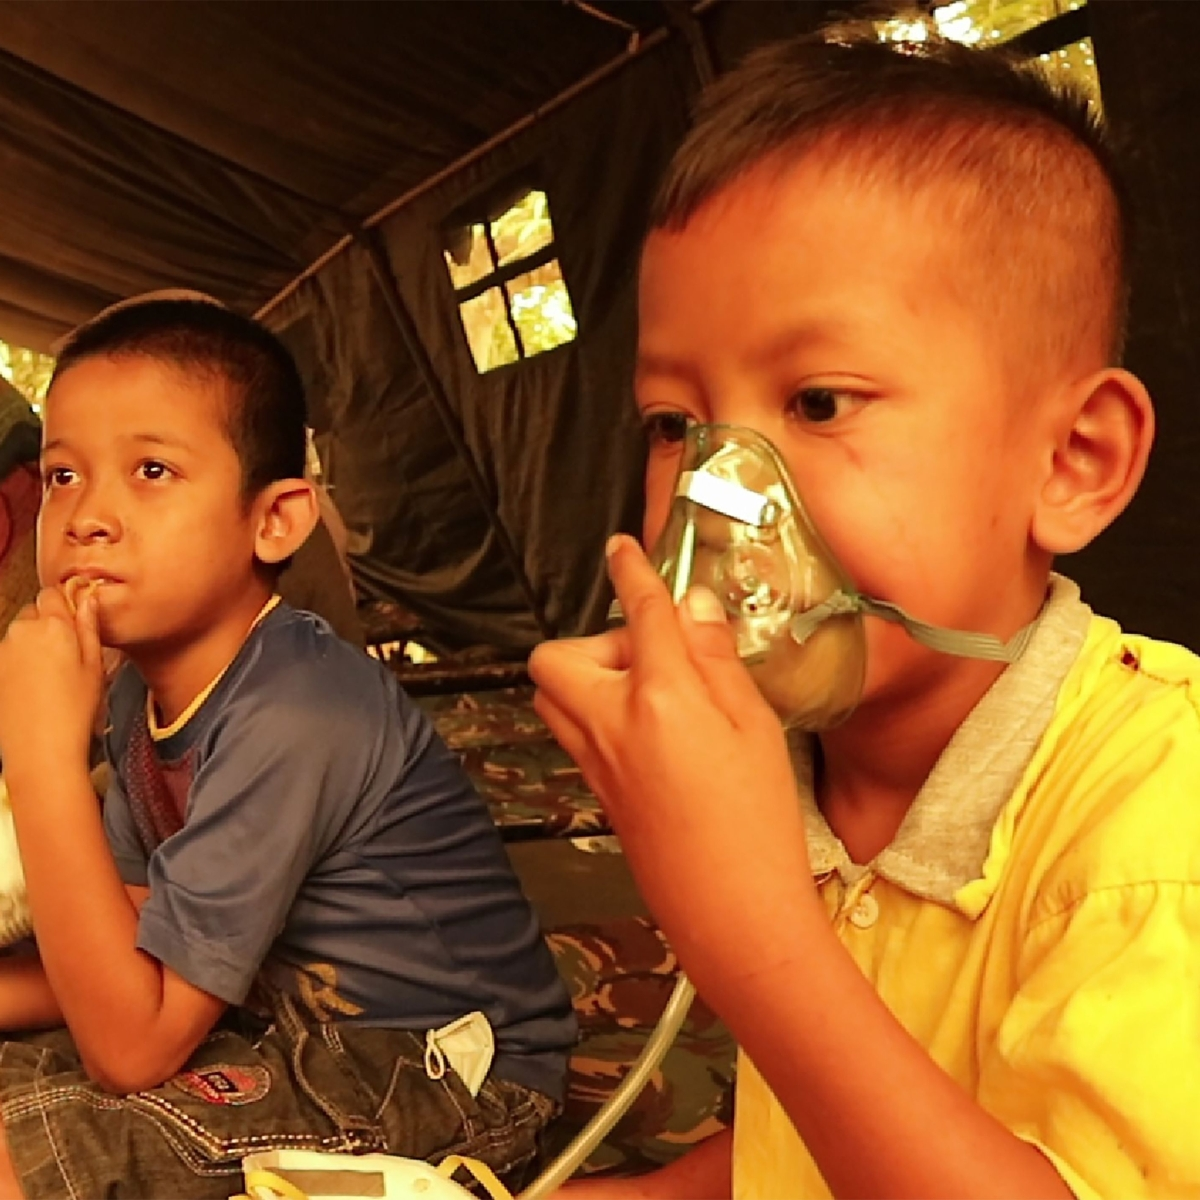 Indonesian forest fires: 10 million children at risk